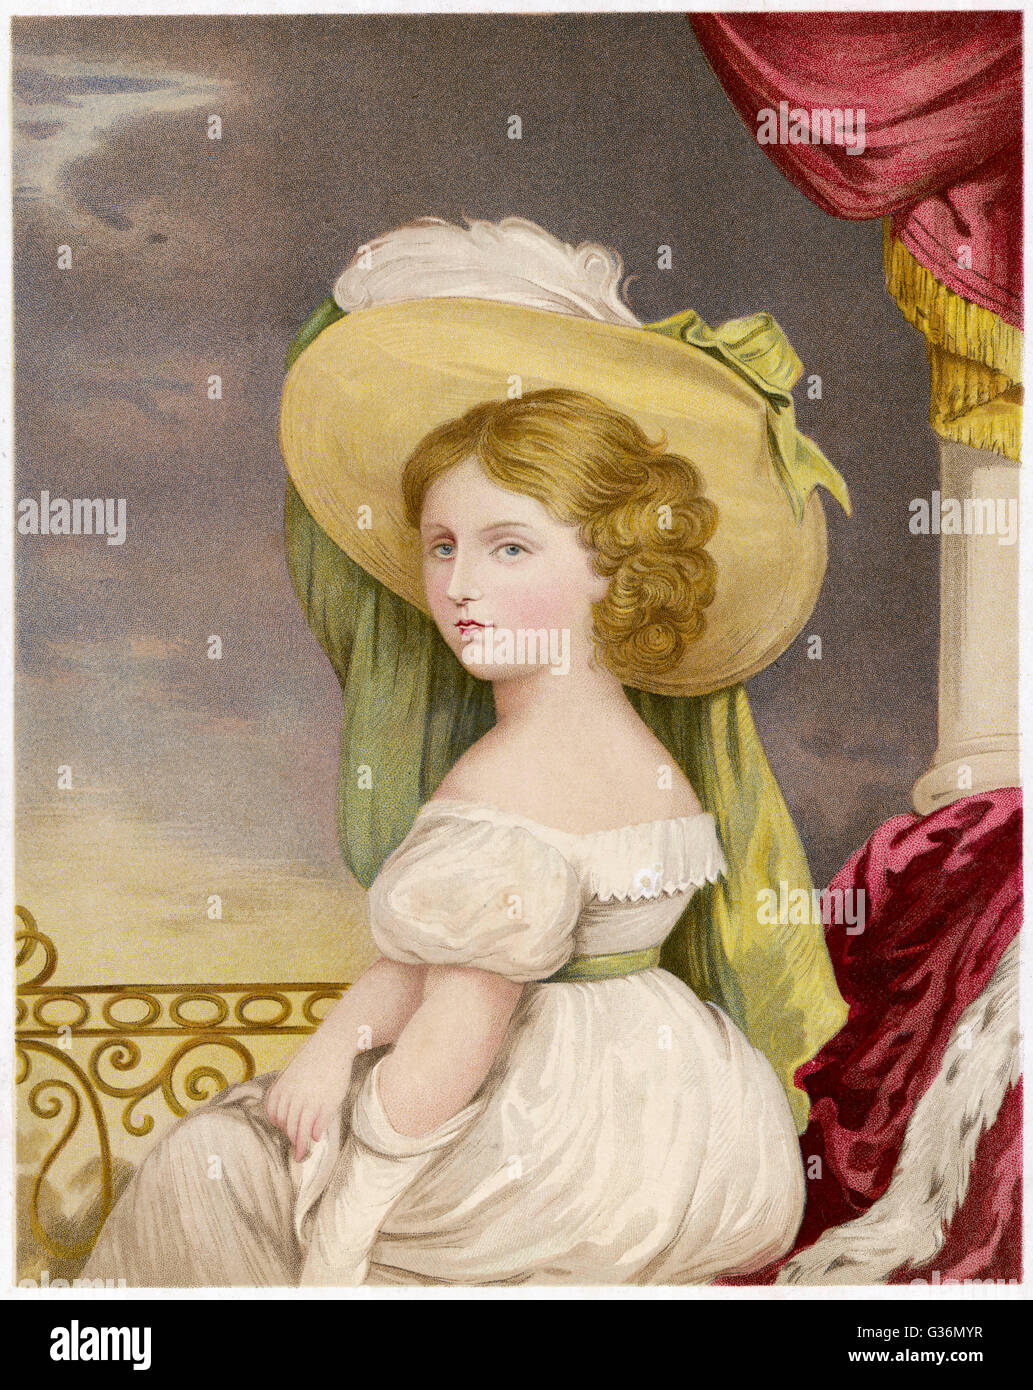 PRINCESS VICTORIA (1819-1901) at the age of twelve - Stock Image